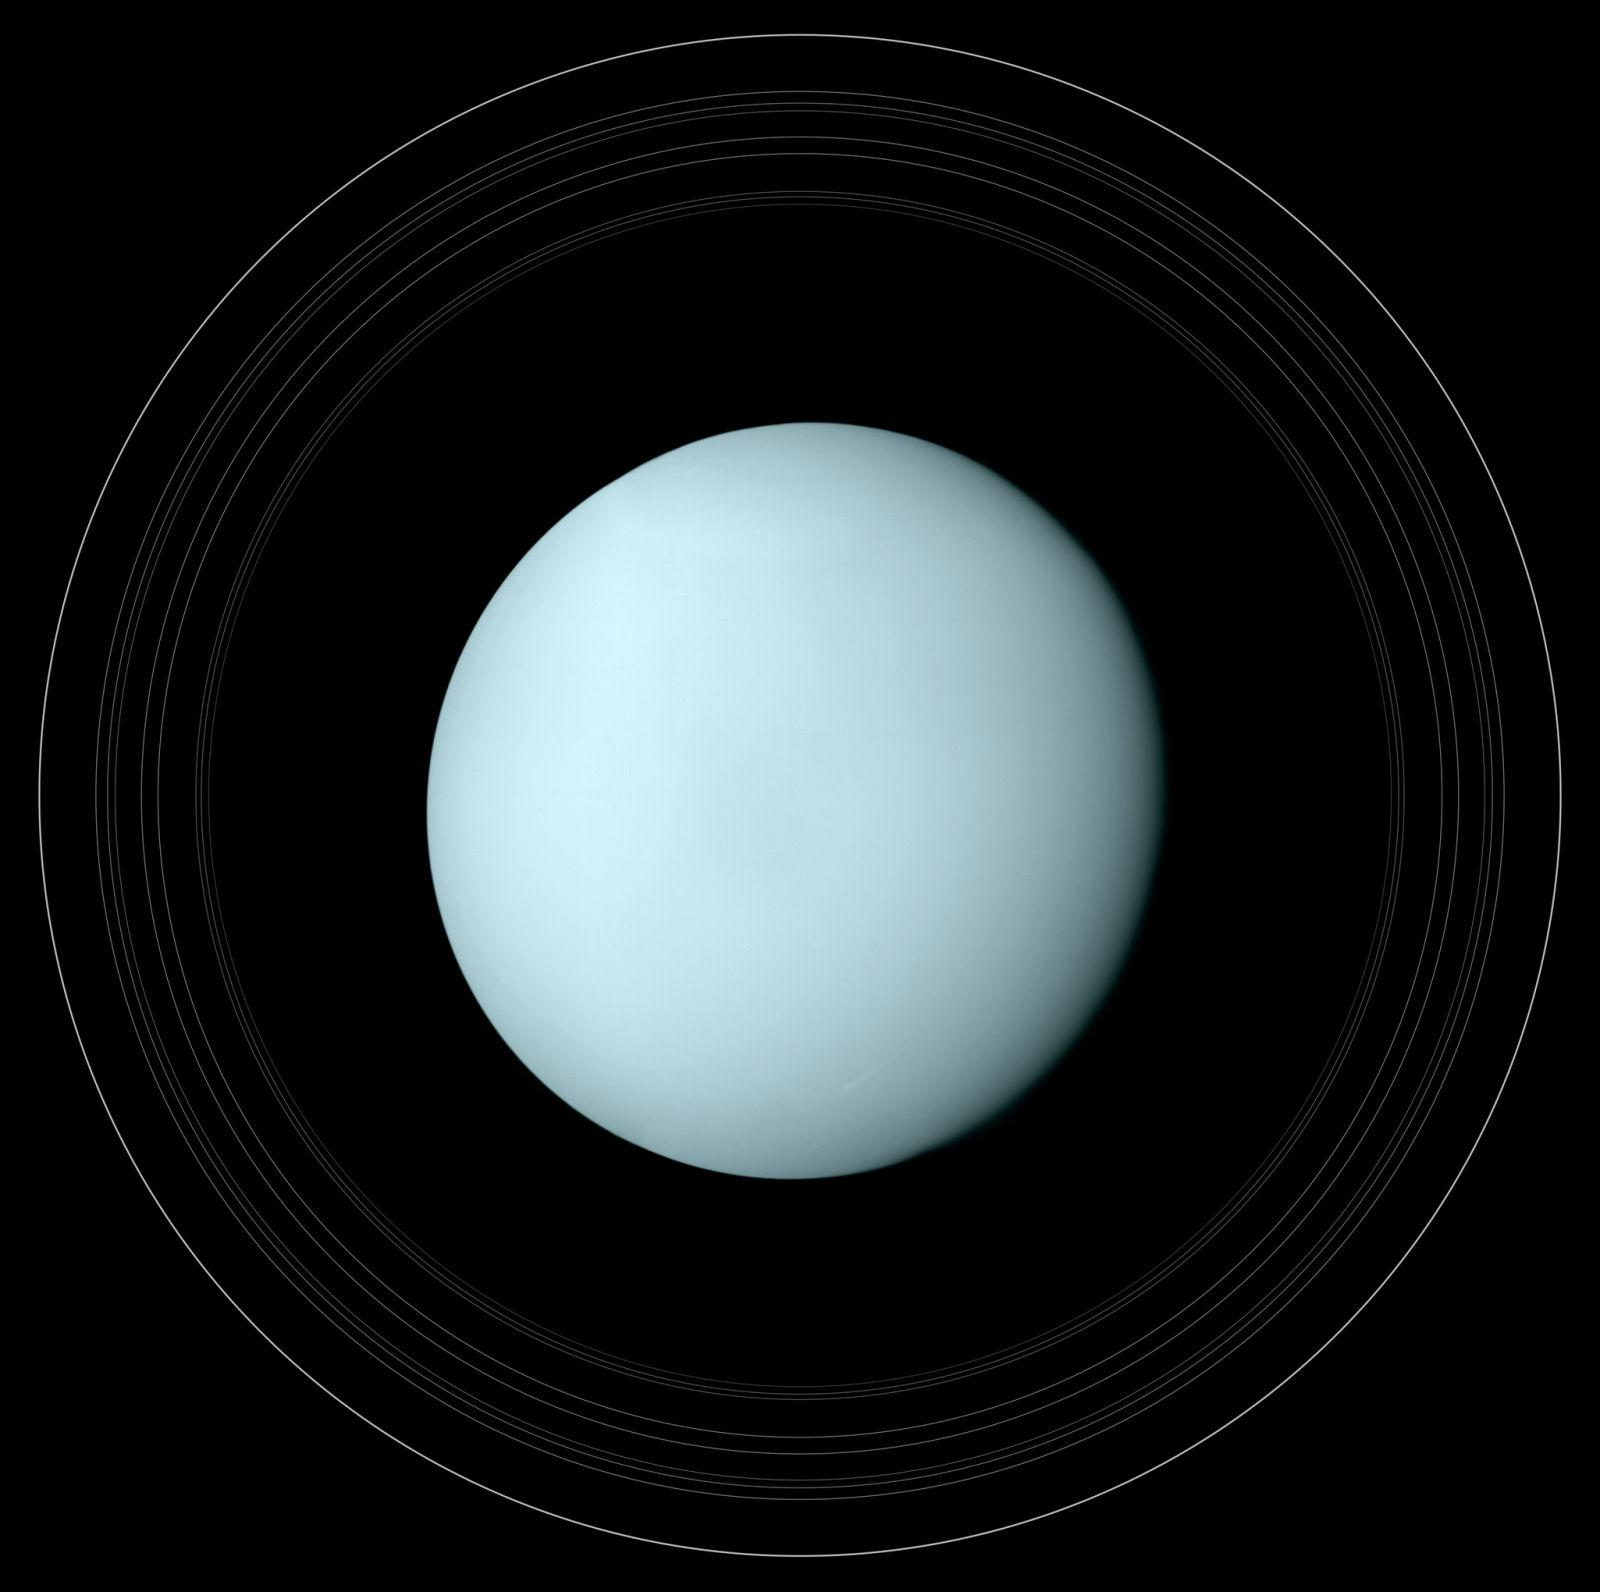 Planet Uranus Rings wallpaper background